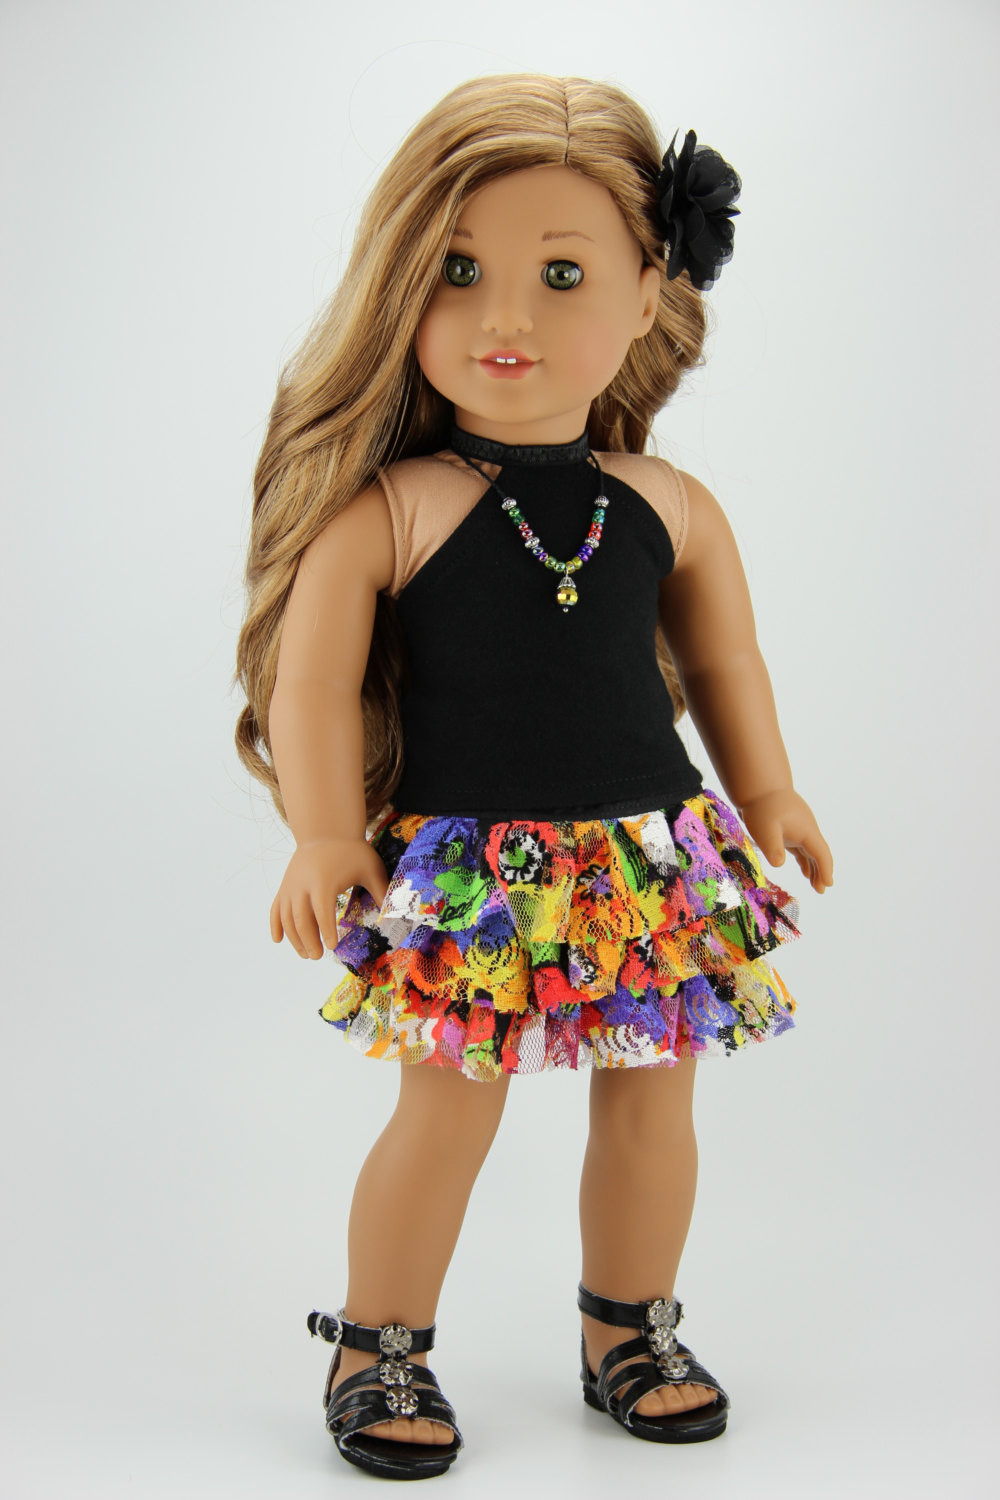 Luxury American Girl Doll Clothes Black and Multi Color Halter top American Girl Doll Skirts Of Incredible 50 Ideas American Girl Doll Skirts